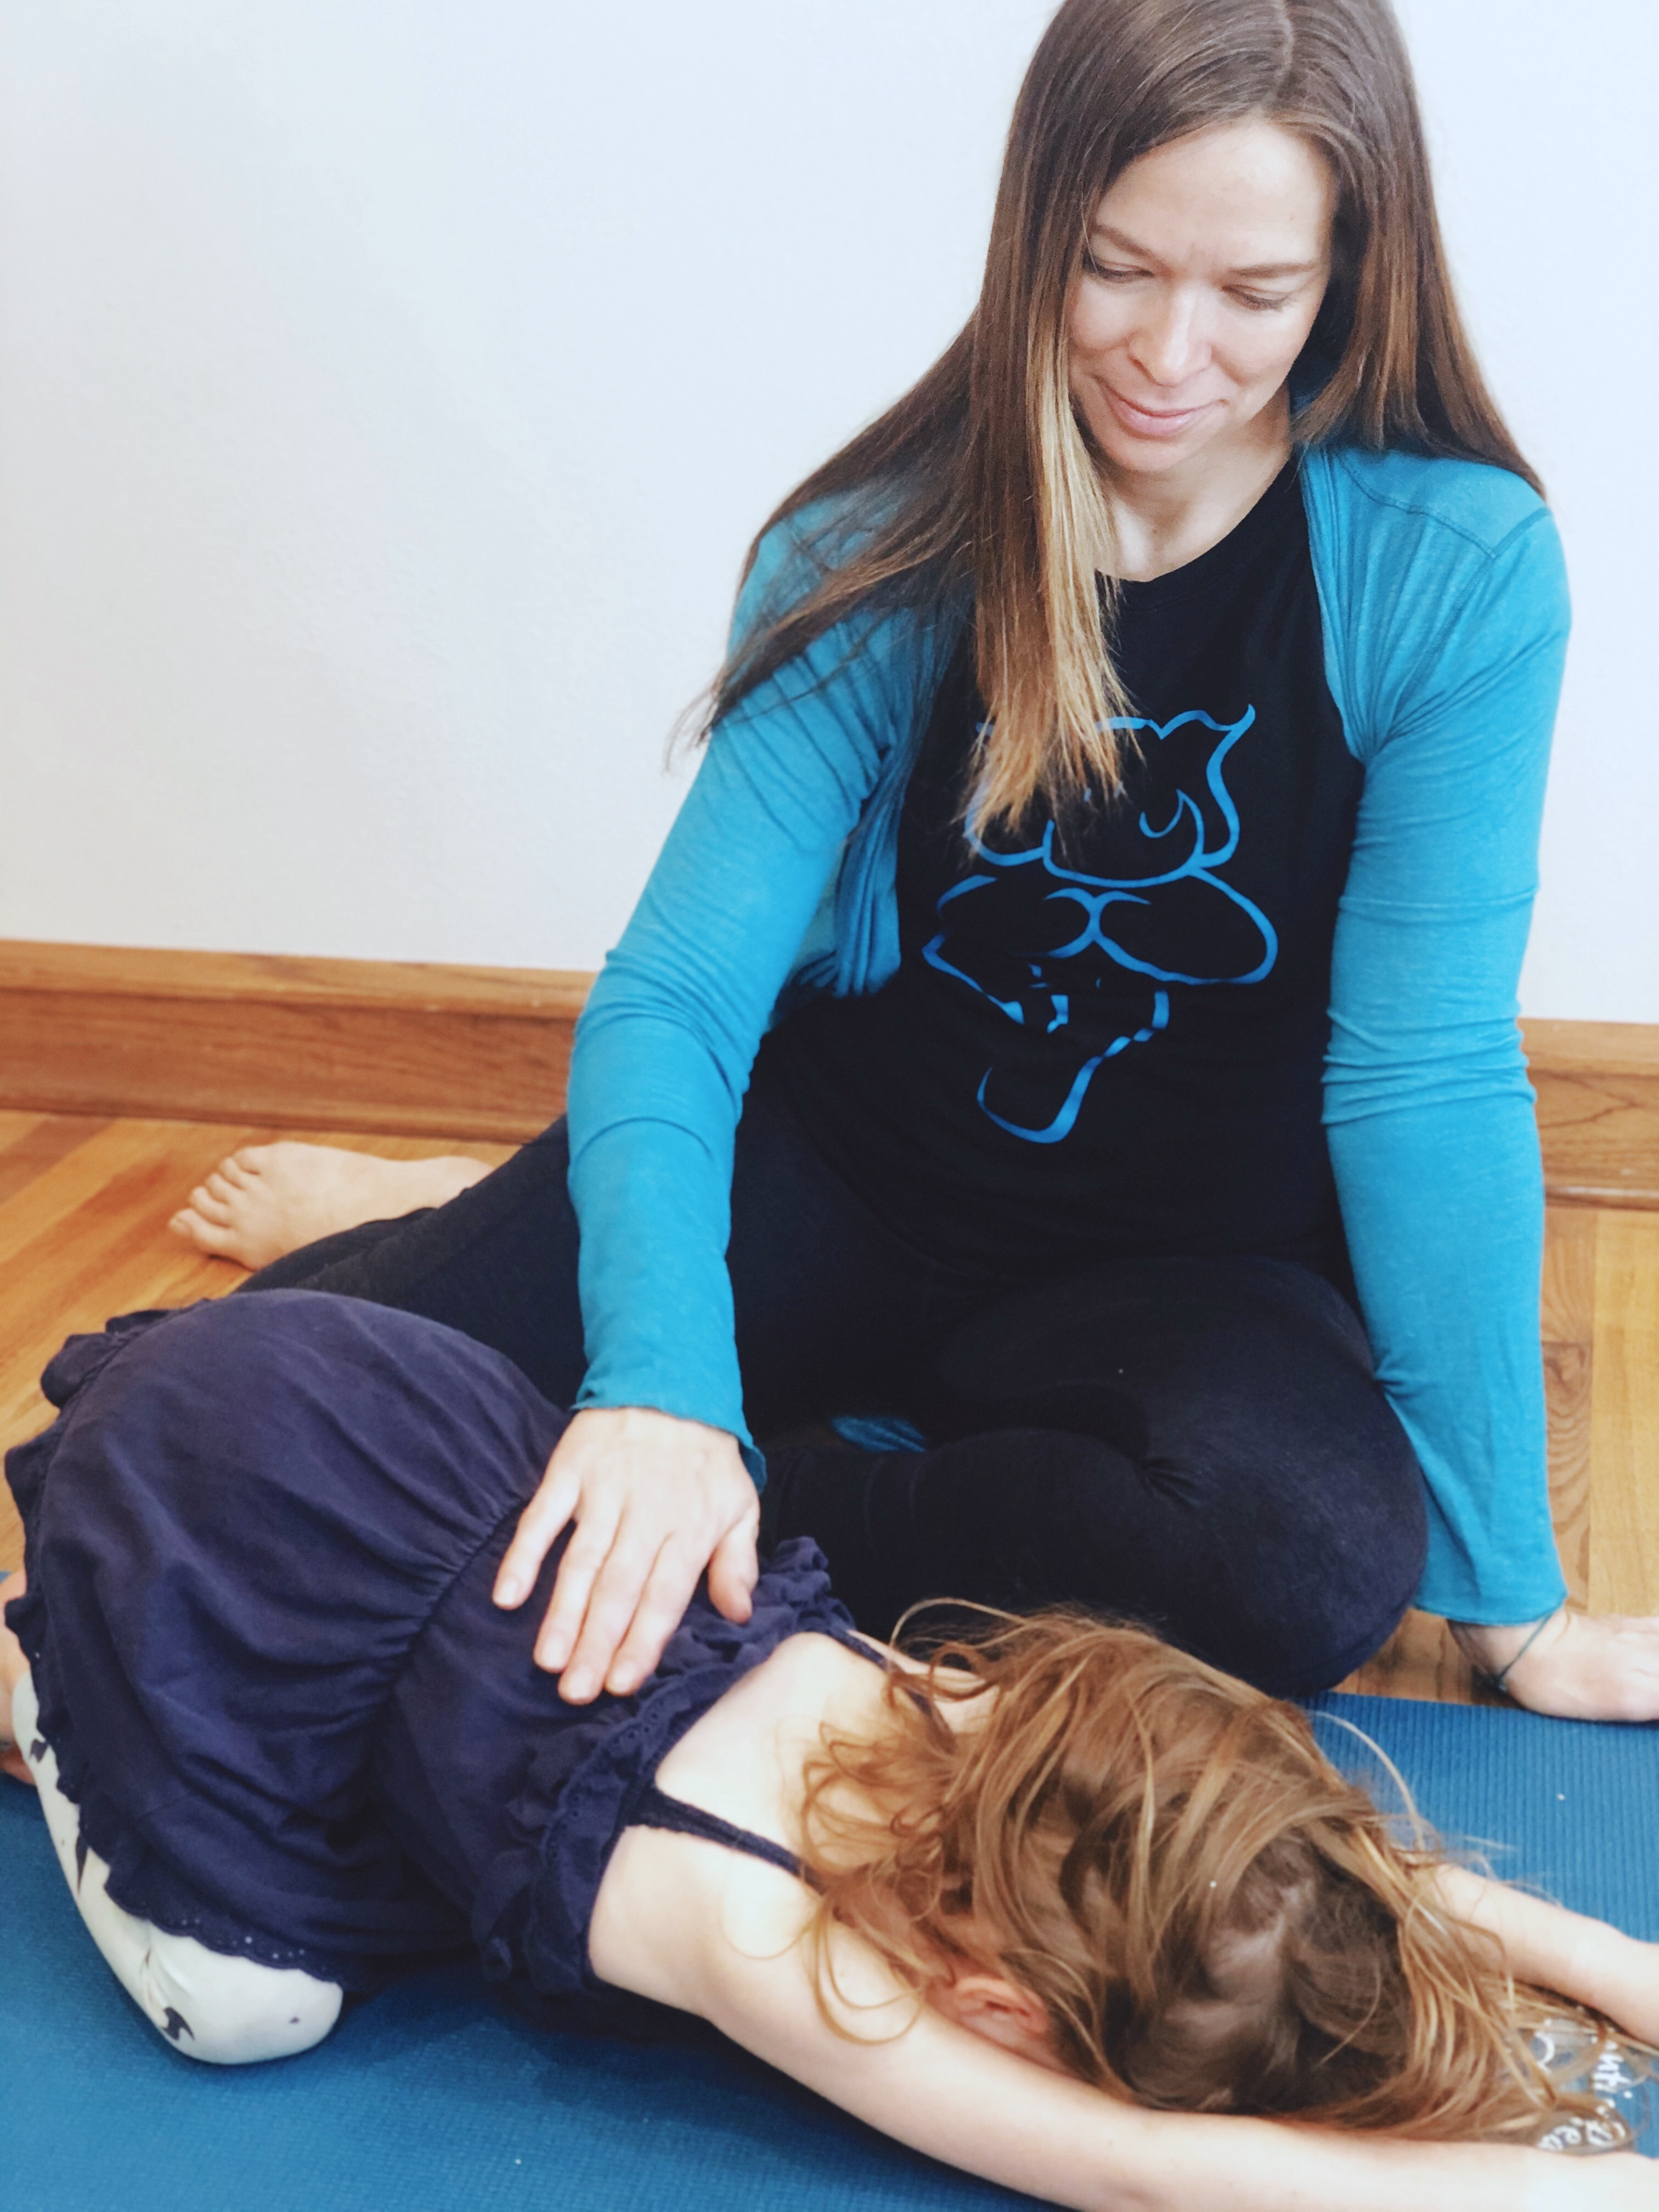 Yoginos instructor guiding student in Balasana or Child